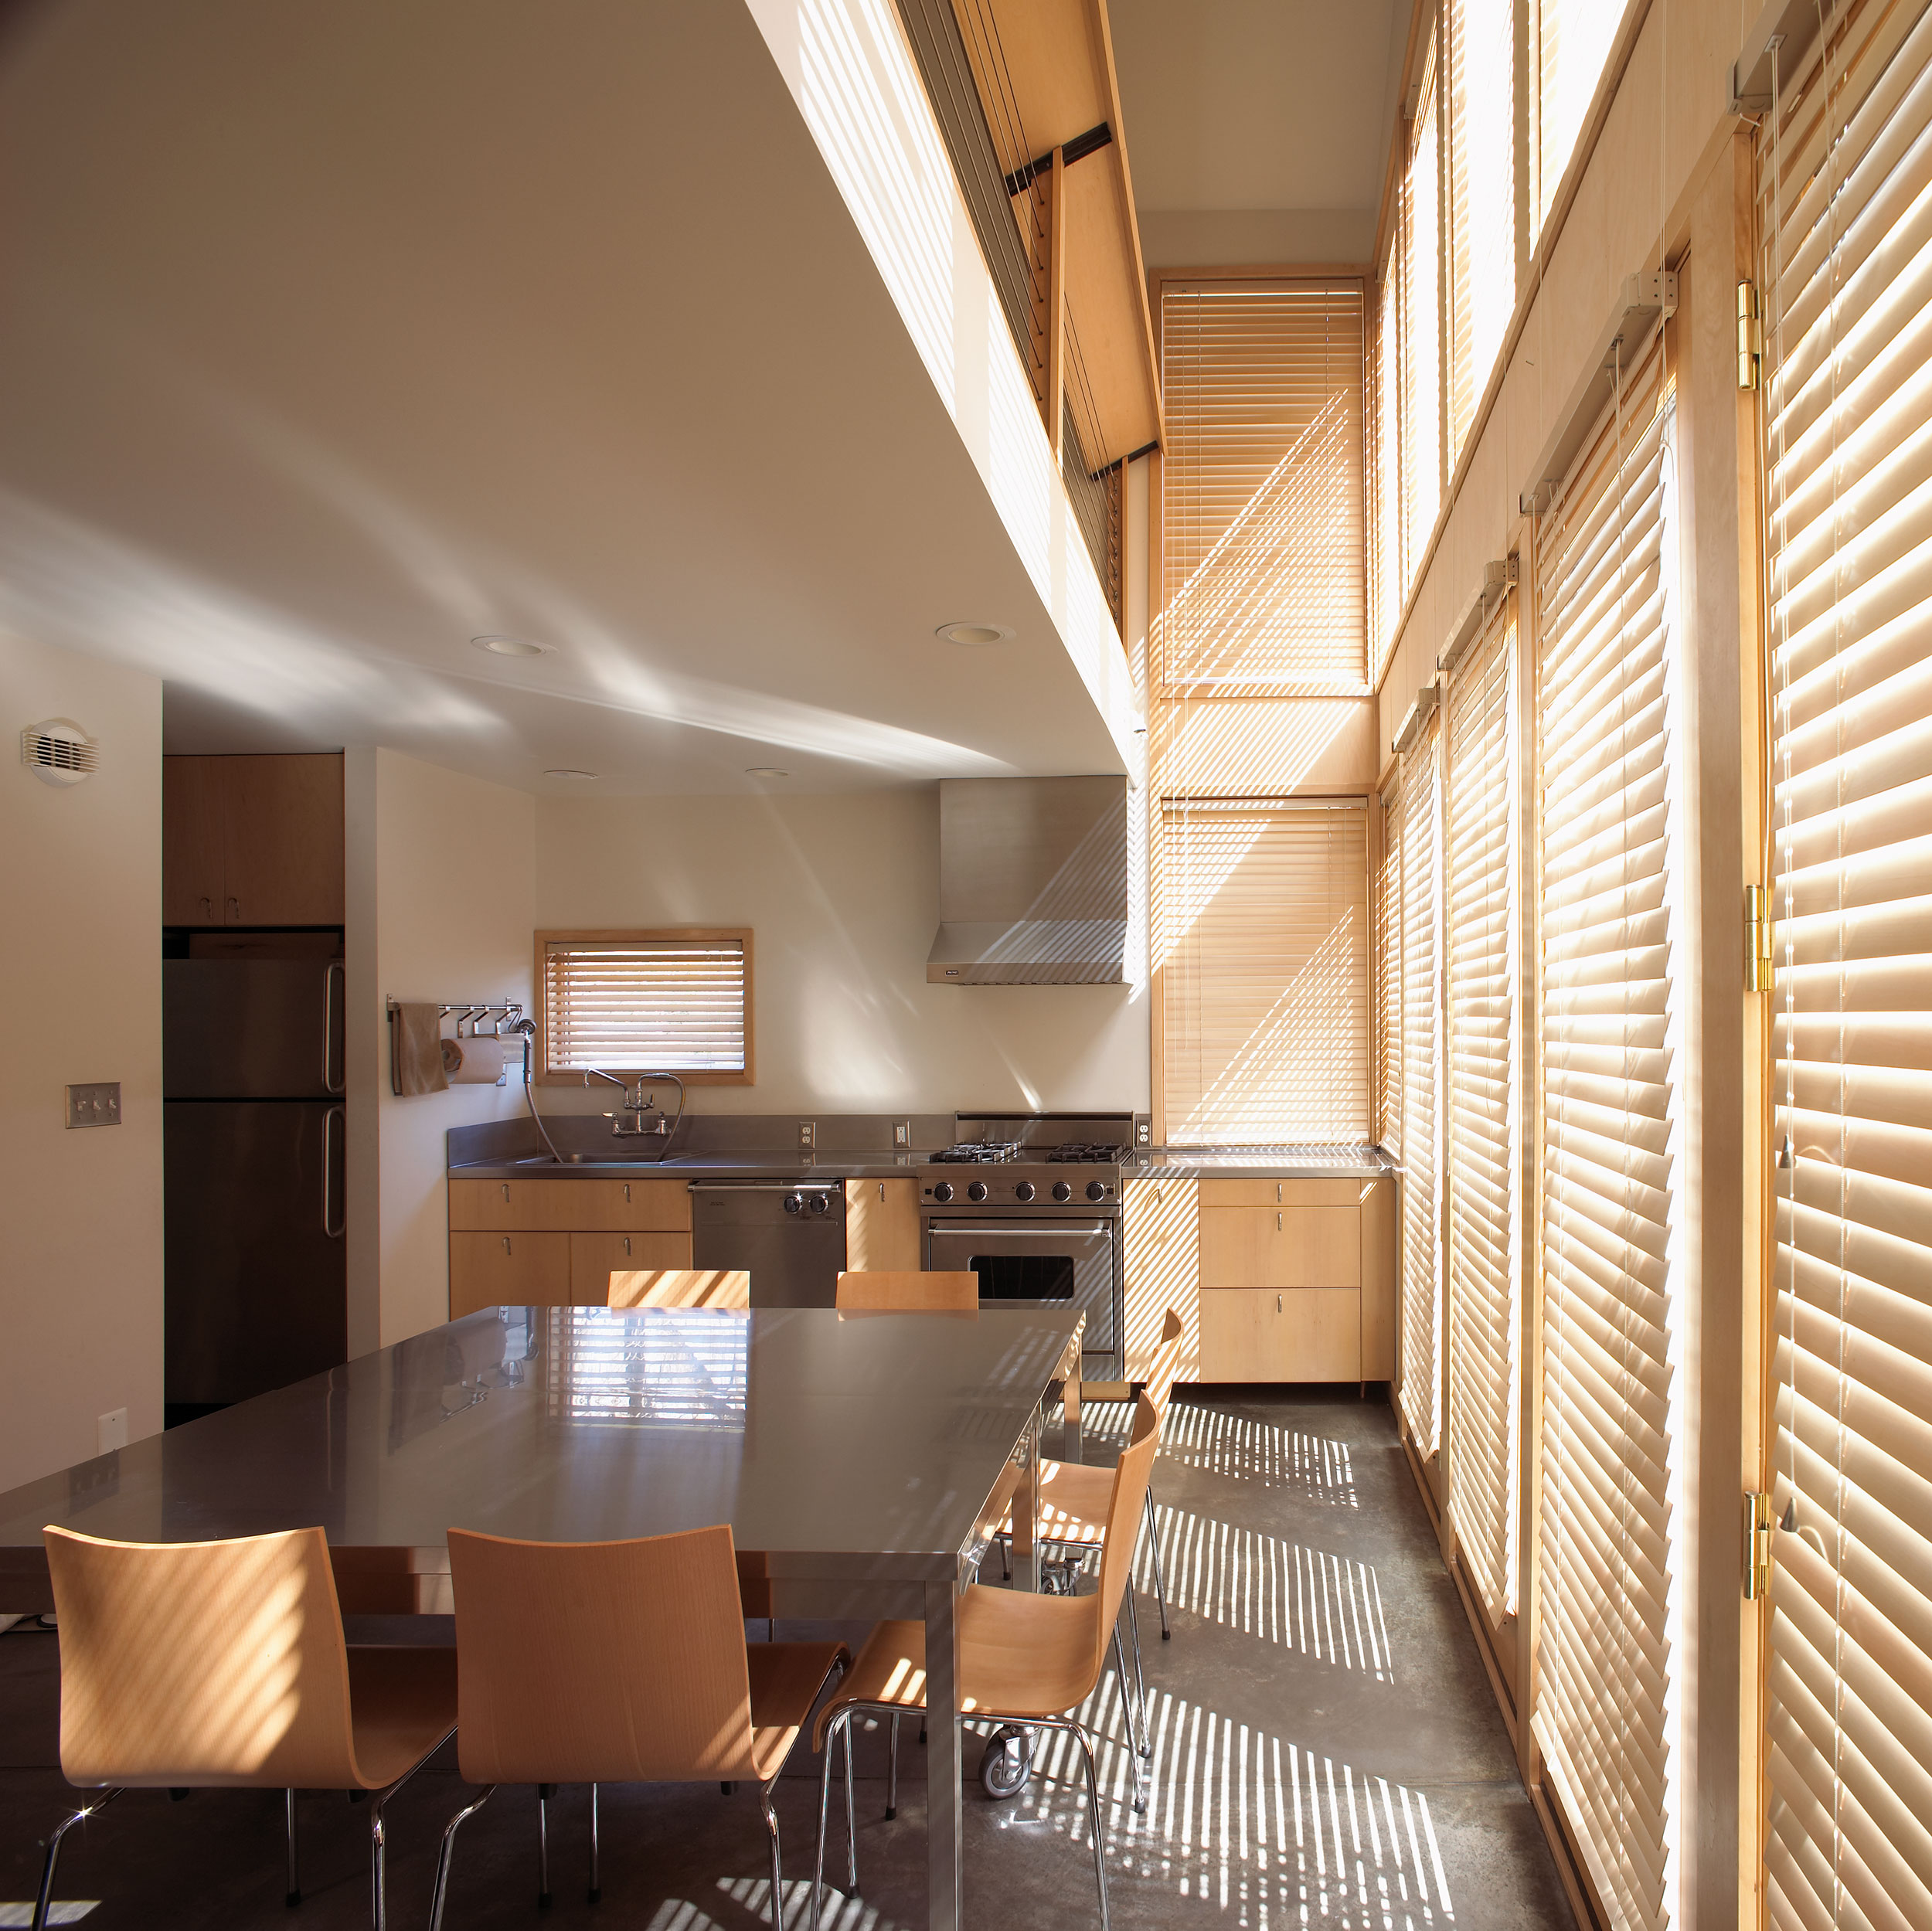 Timepiece, House, Charlottesville, Virginia, Light, Human Experience, Economical, Wood, Concrete, Stainless Steel, Blinds, Balcony